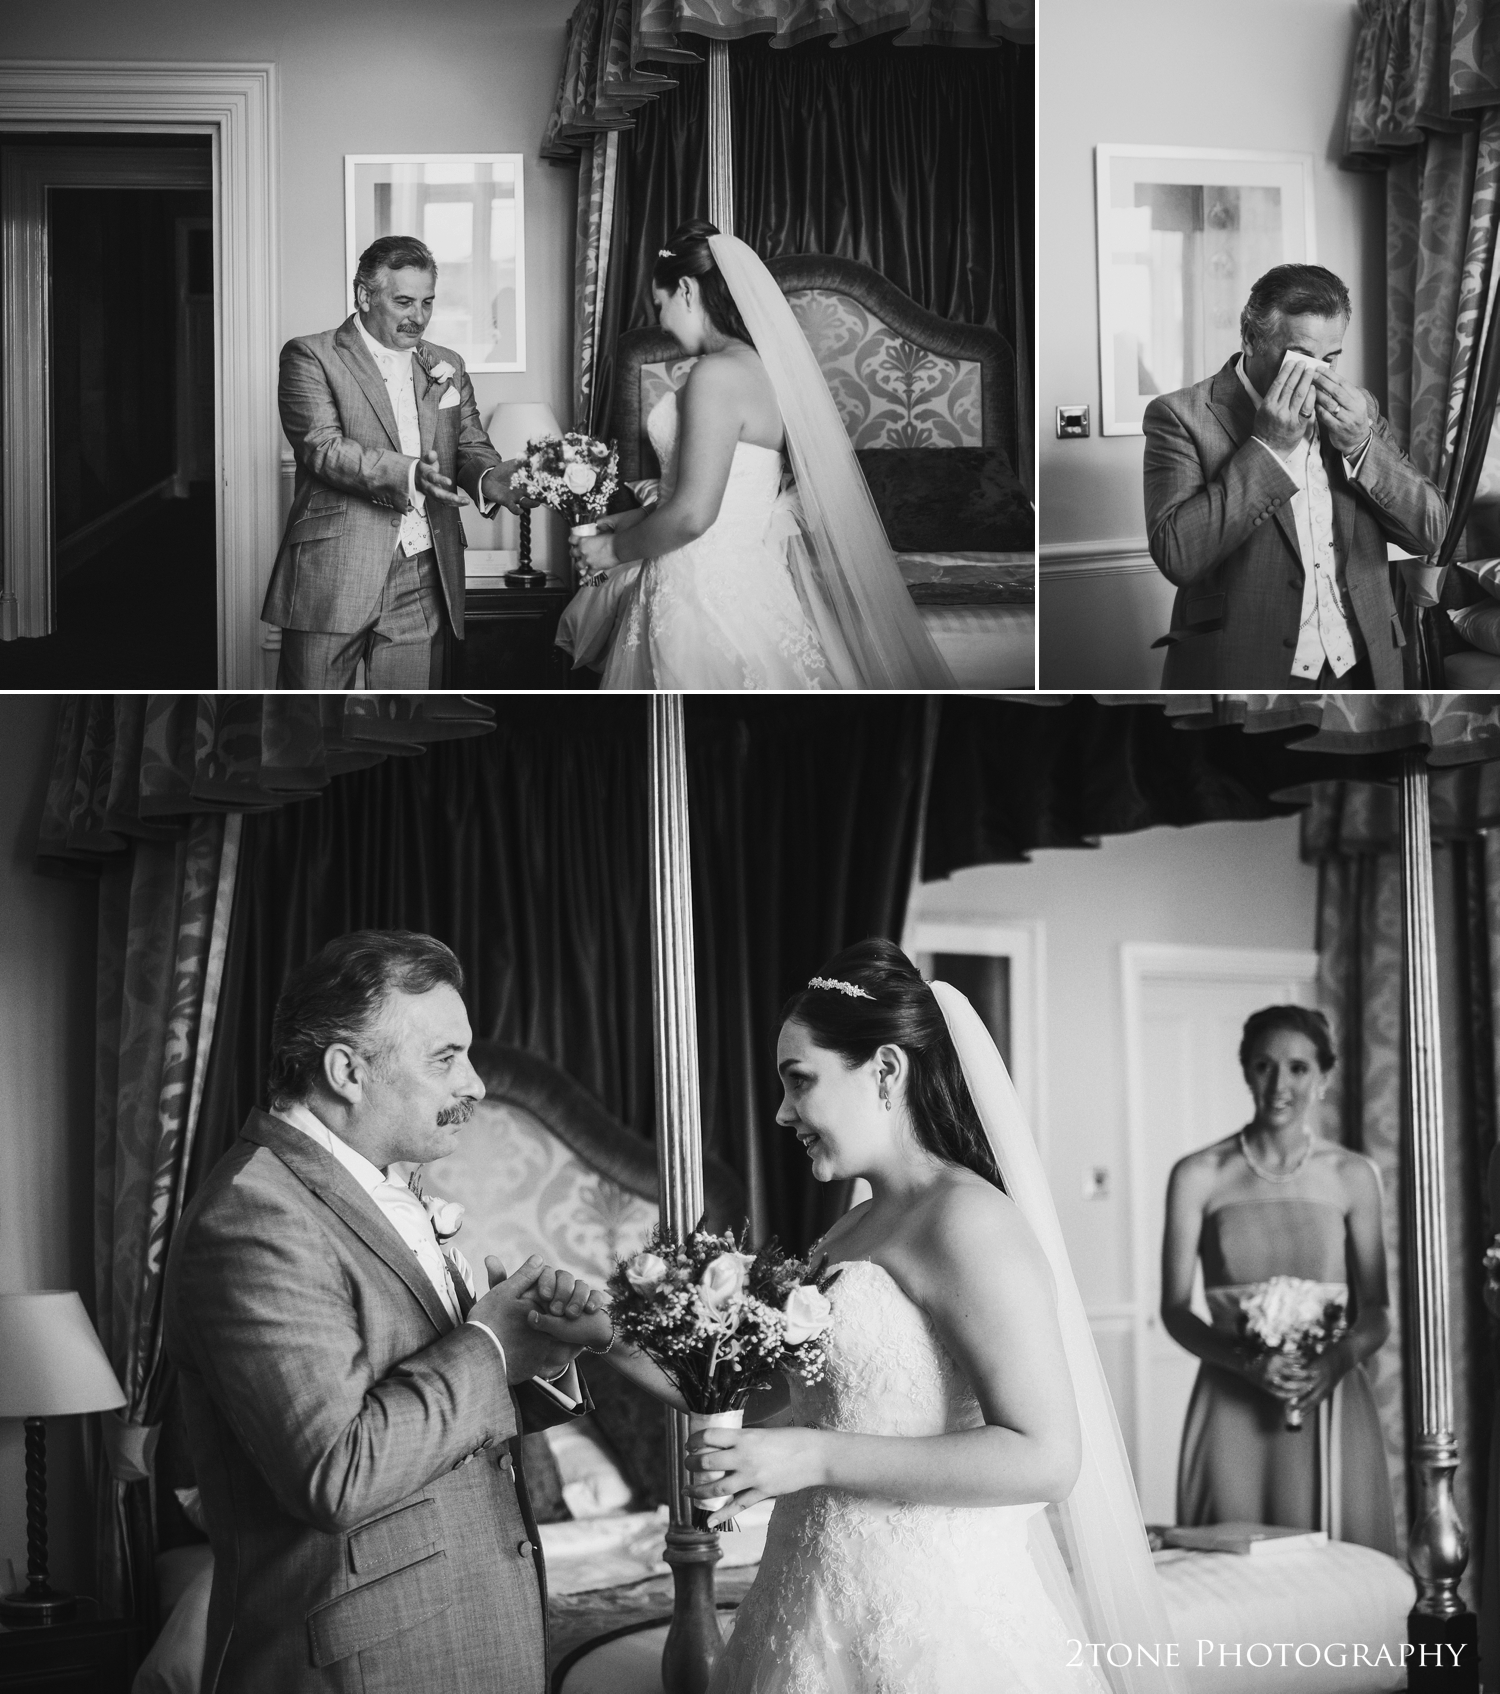 A priceless momentand one of my favourites on a wedding day -the moment the bride's father sees his daughter for the first time onher wedding day.